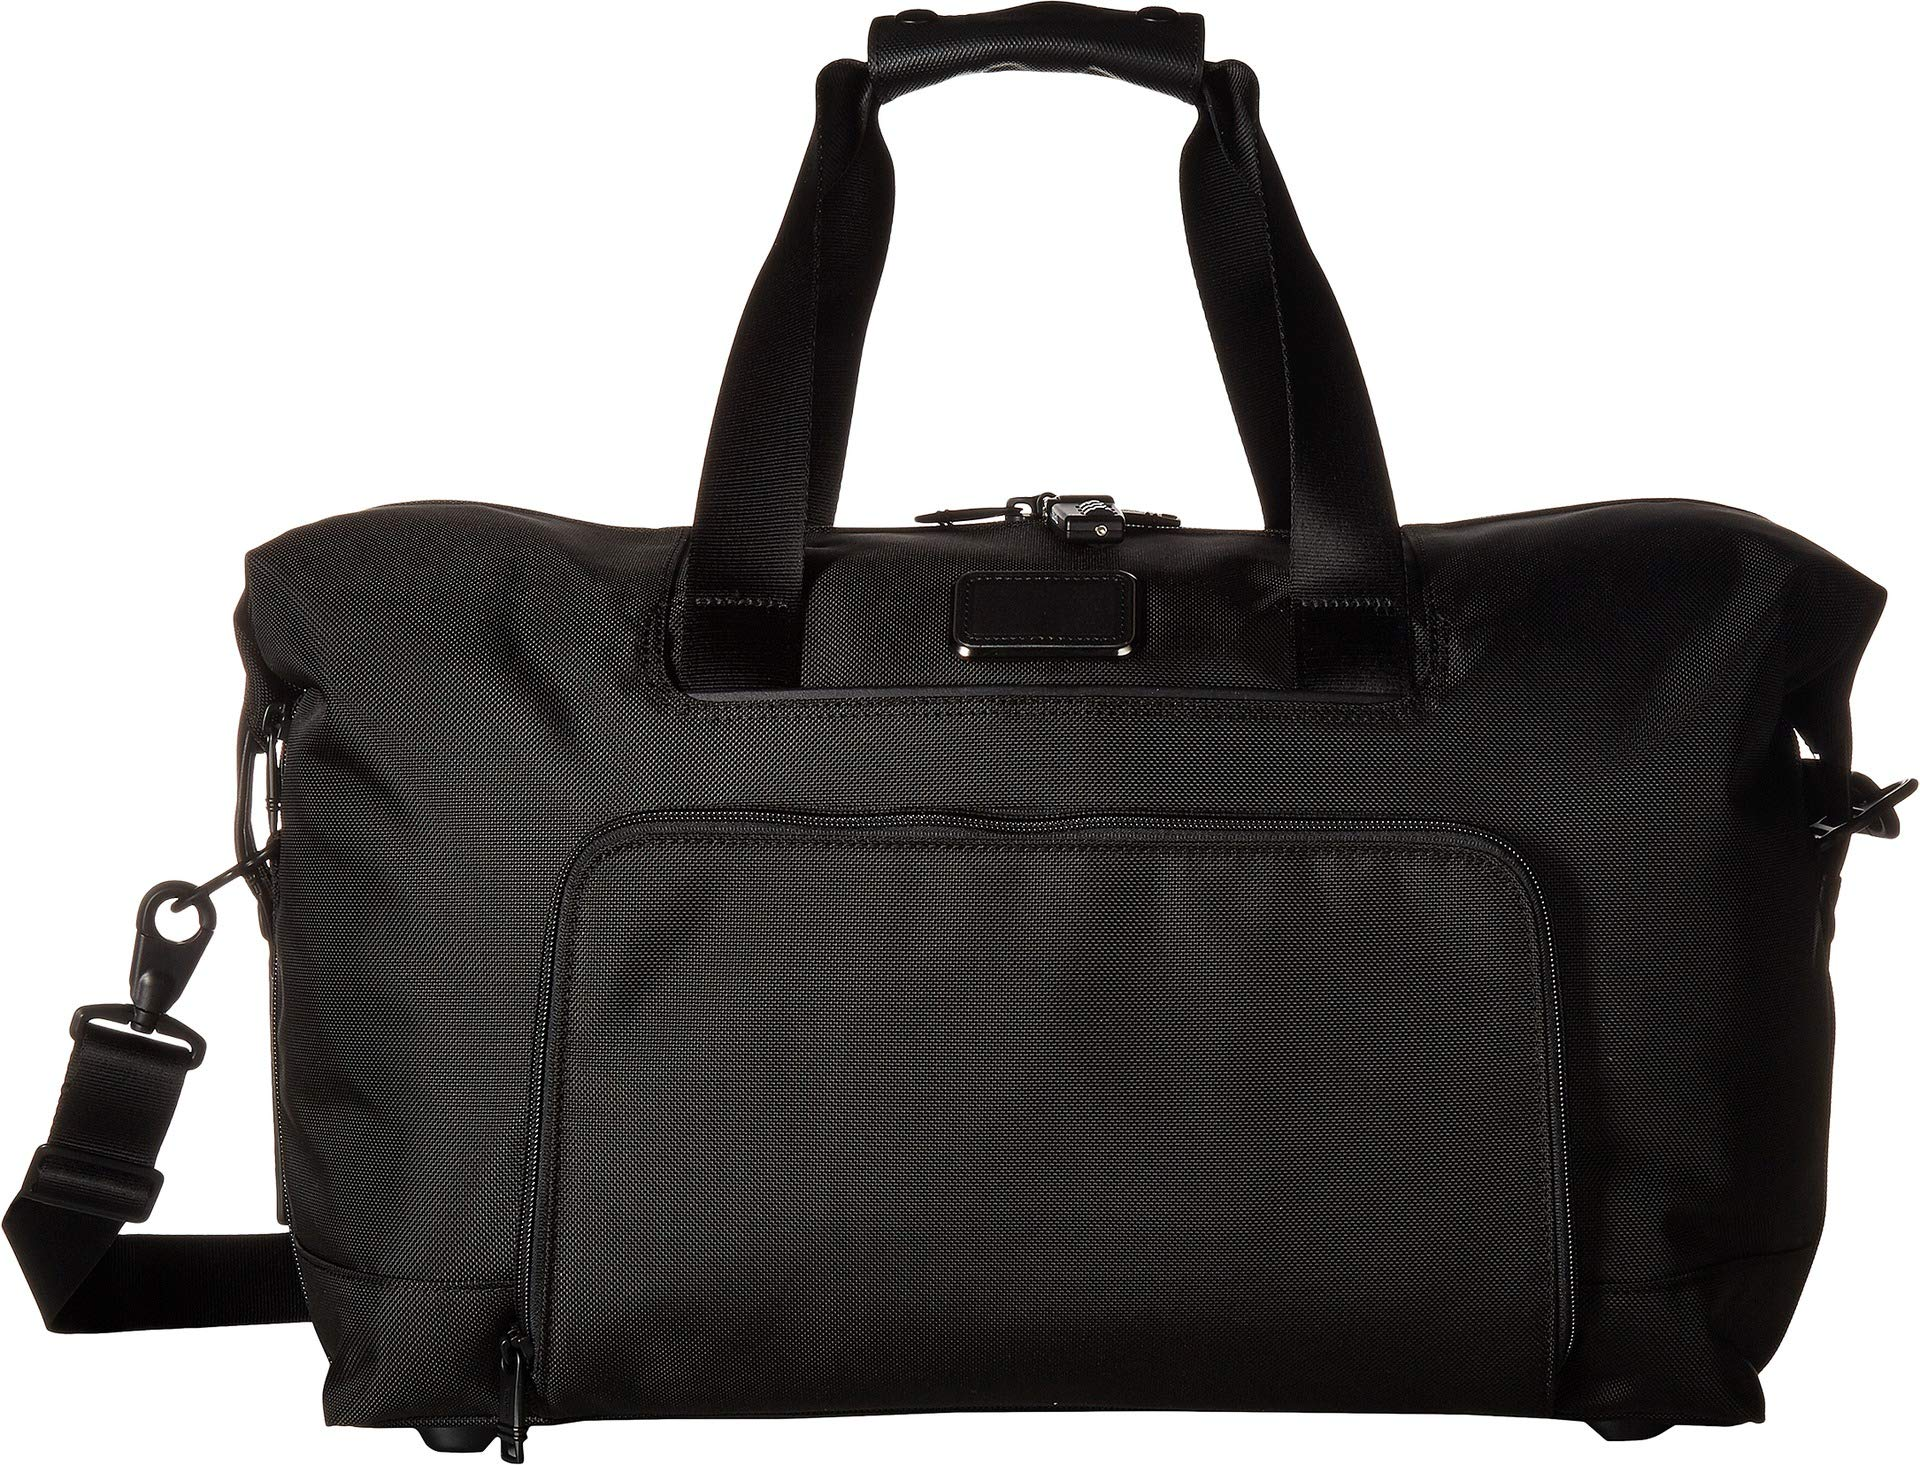 TUMI - Alpha 3 Double Expansion Travel Satchel - Duffle Bag for Men and Women - Black